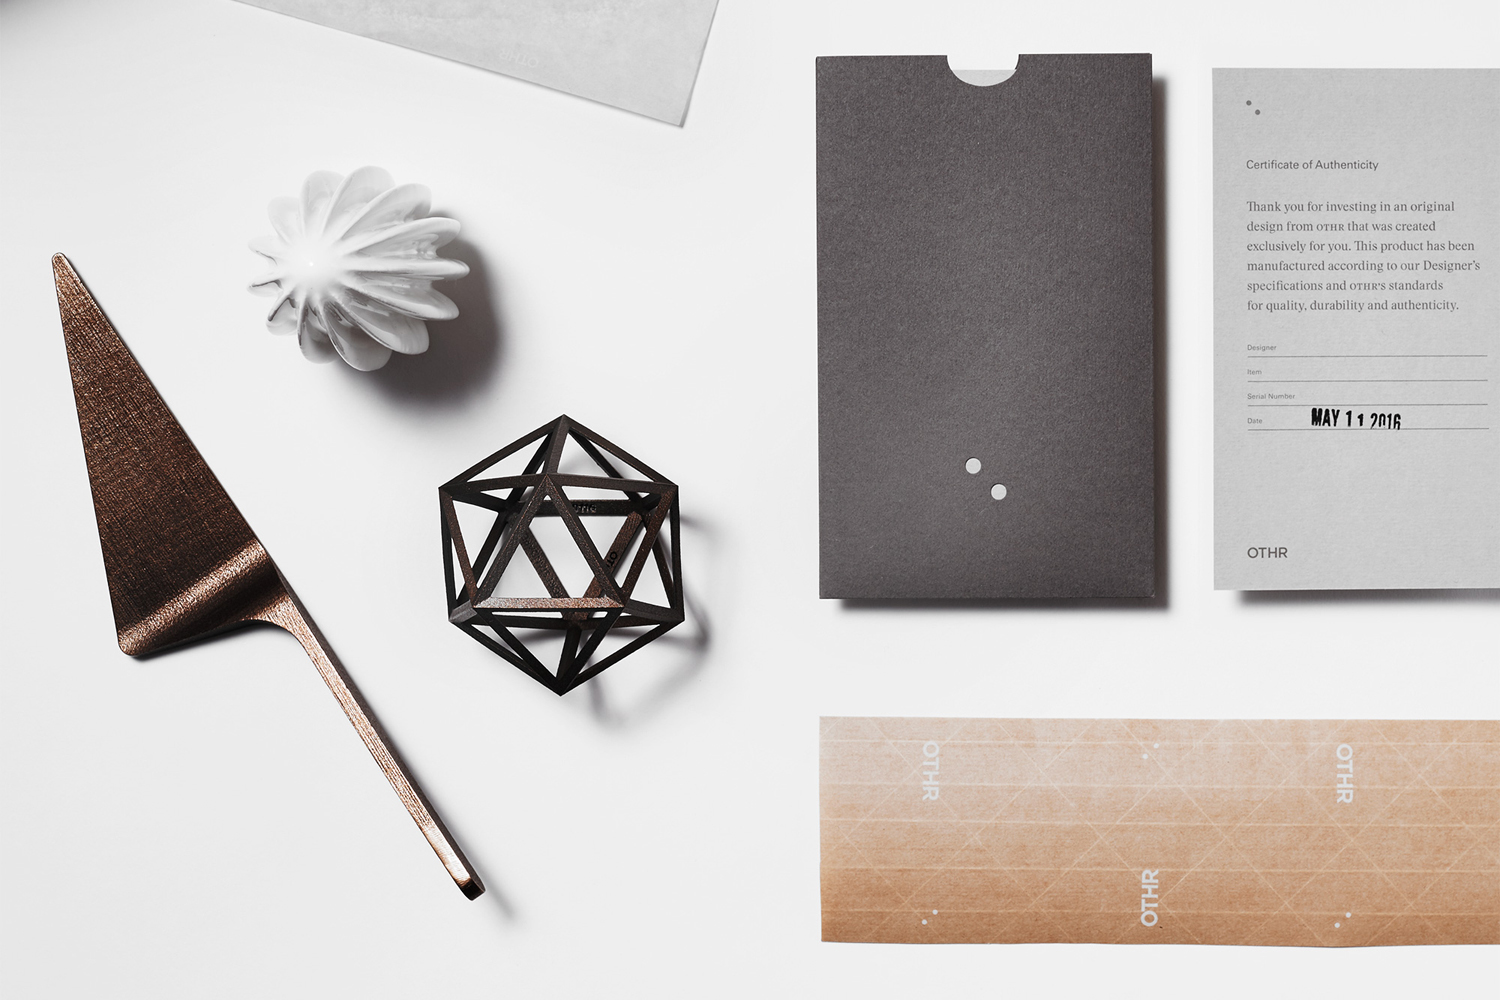 Branding by New York-based design studio Franklyn for innovative product design company OTHR